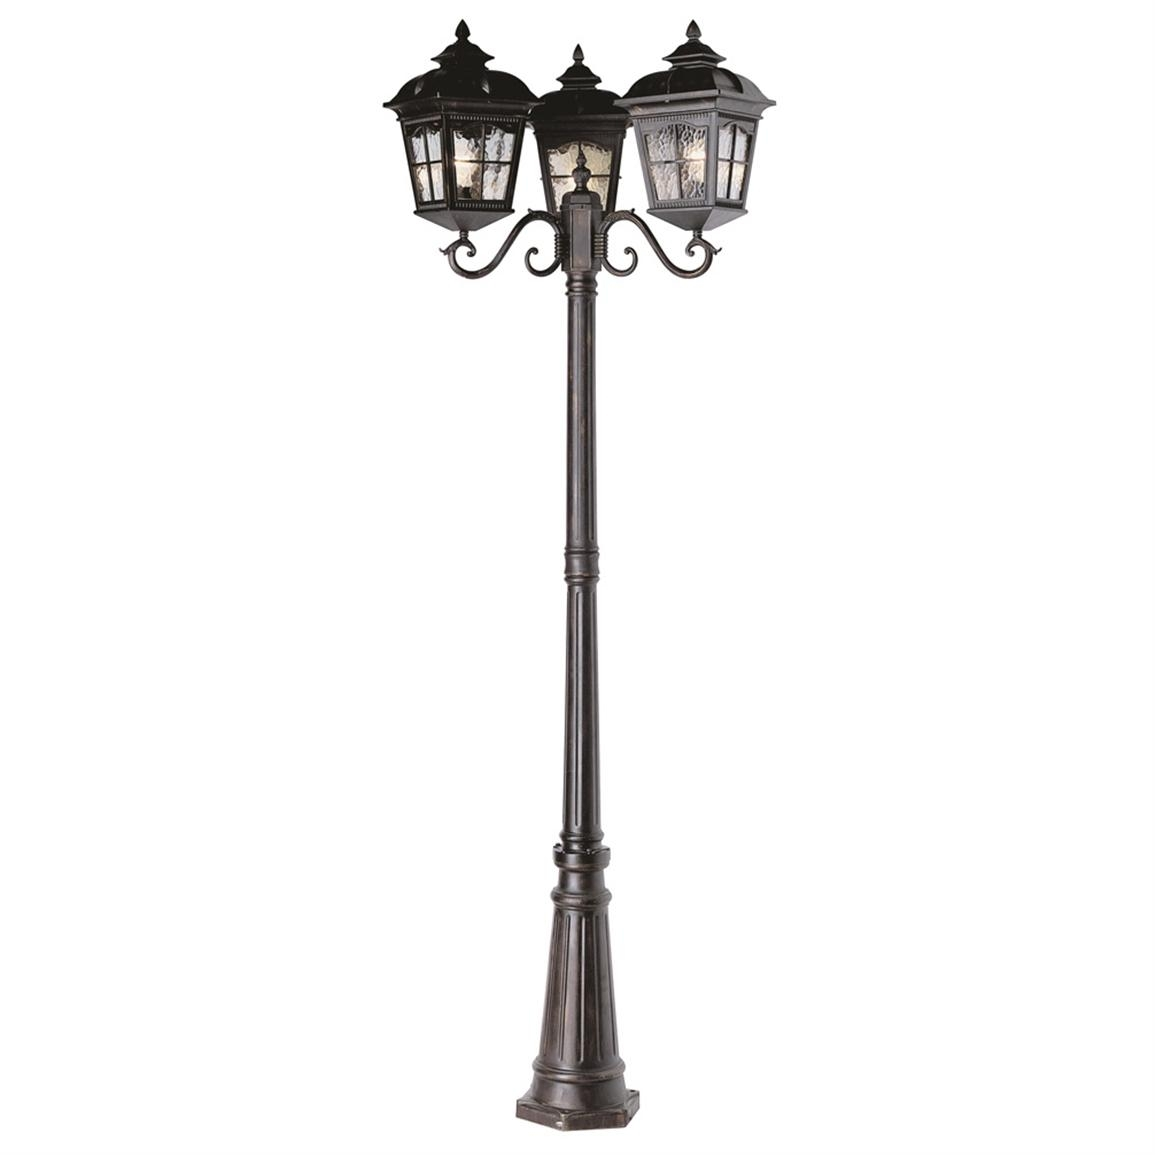 Outdoor Light : Thrift Outdoor Pole Barn Lighting , Outdoor intended for Outdoor Pole Lanterns (Image 14 of 20)